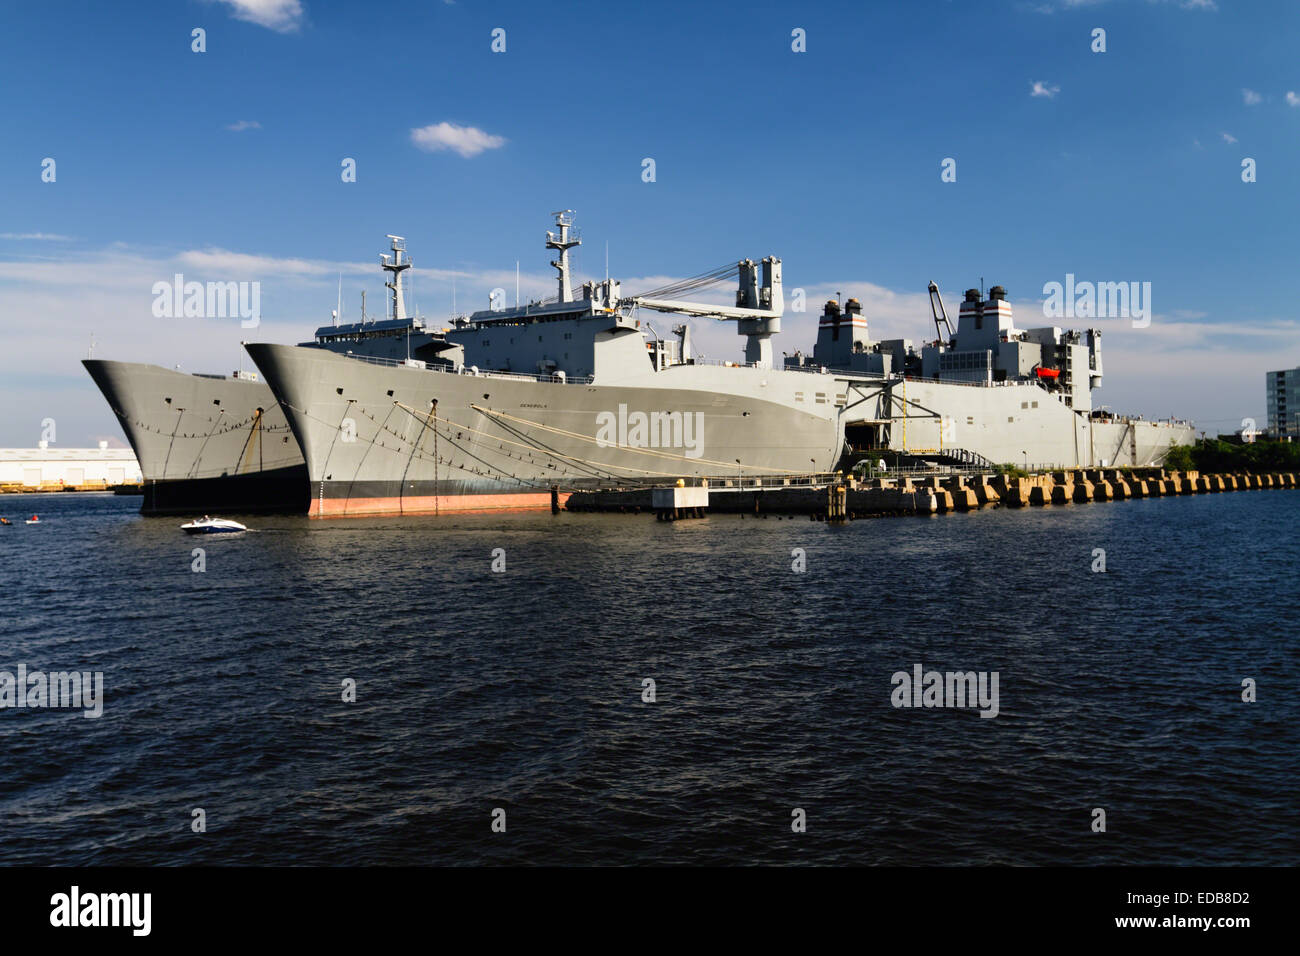 Two Algol Class Military Cargo Ships Anchored in Baltimore Harbor, Maryland - Stock Image